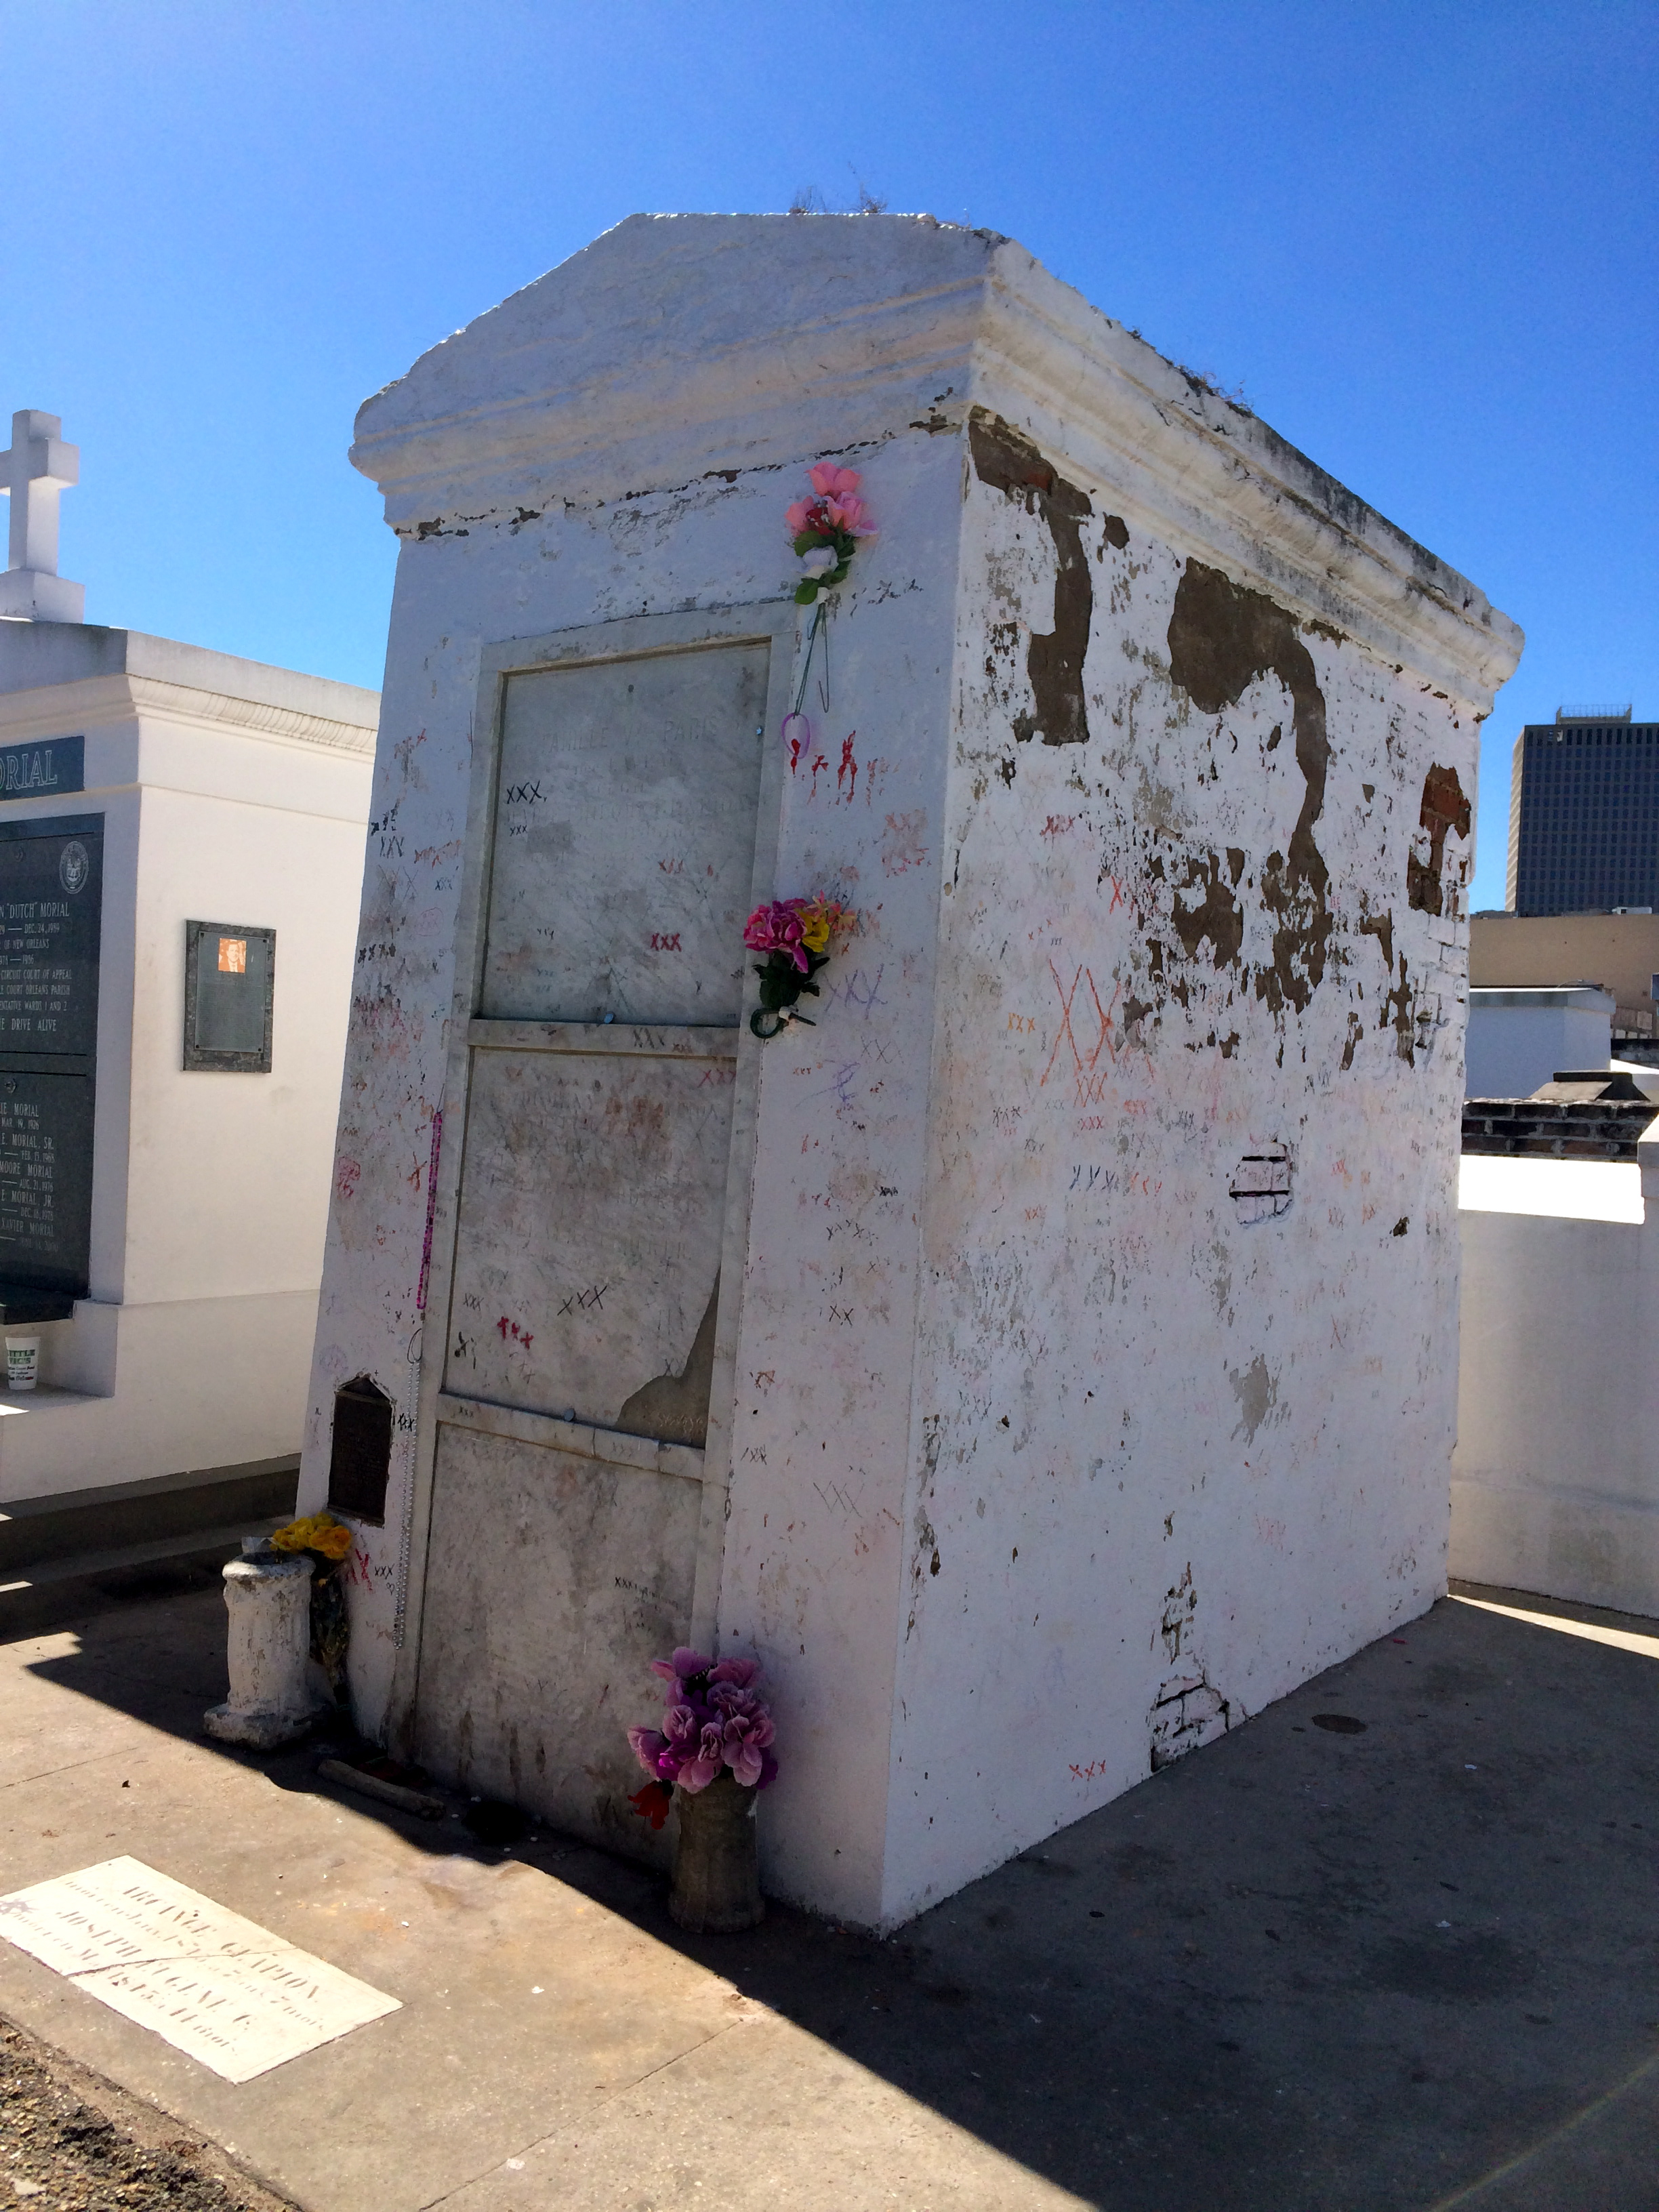 The Famous Voodoo Queen of New Orleans, Marie Laveau